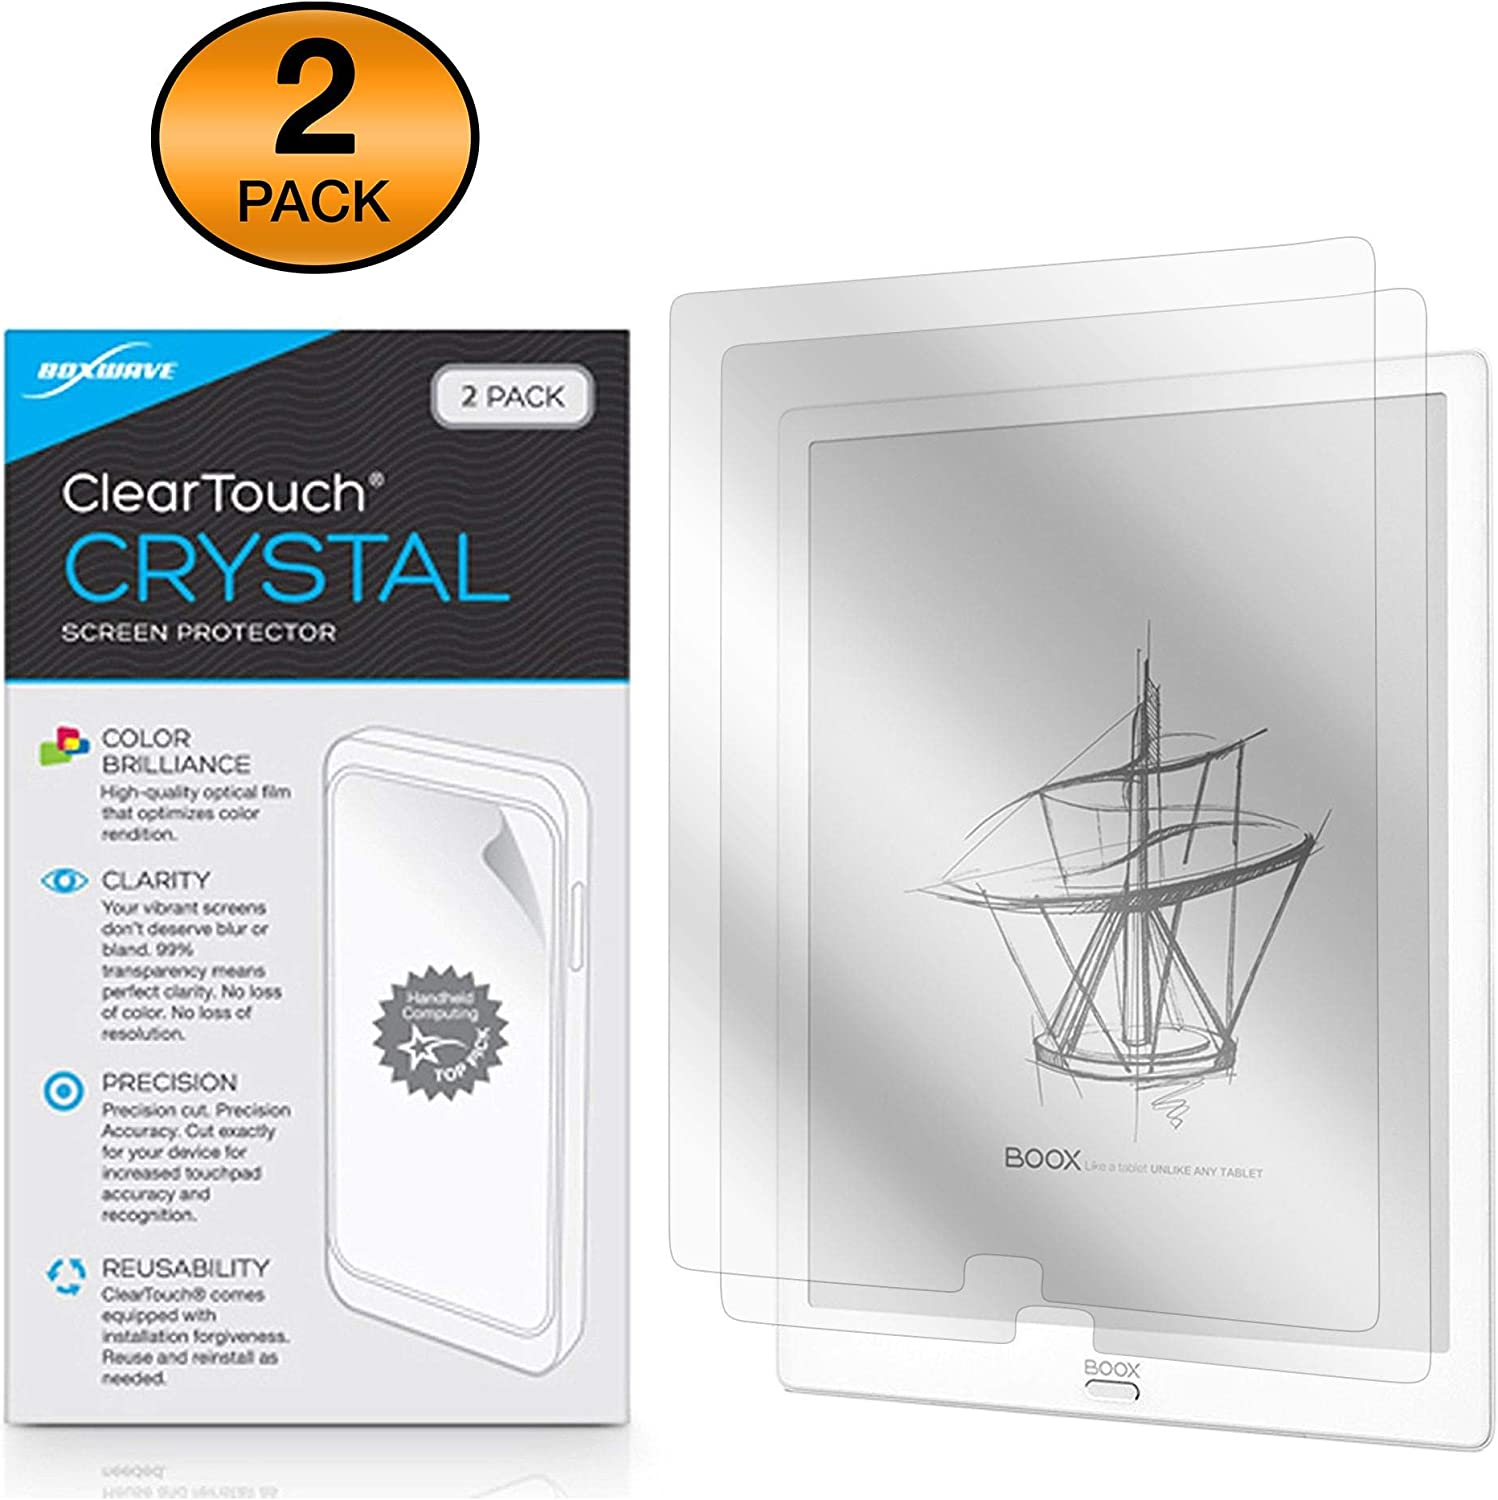 Onyx Boox MAX3 Screen Protector Shields from Scratches for Onyx Boox MAX3 BoxWave ClearTouch Crystal 2-Pack HD Film Skin